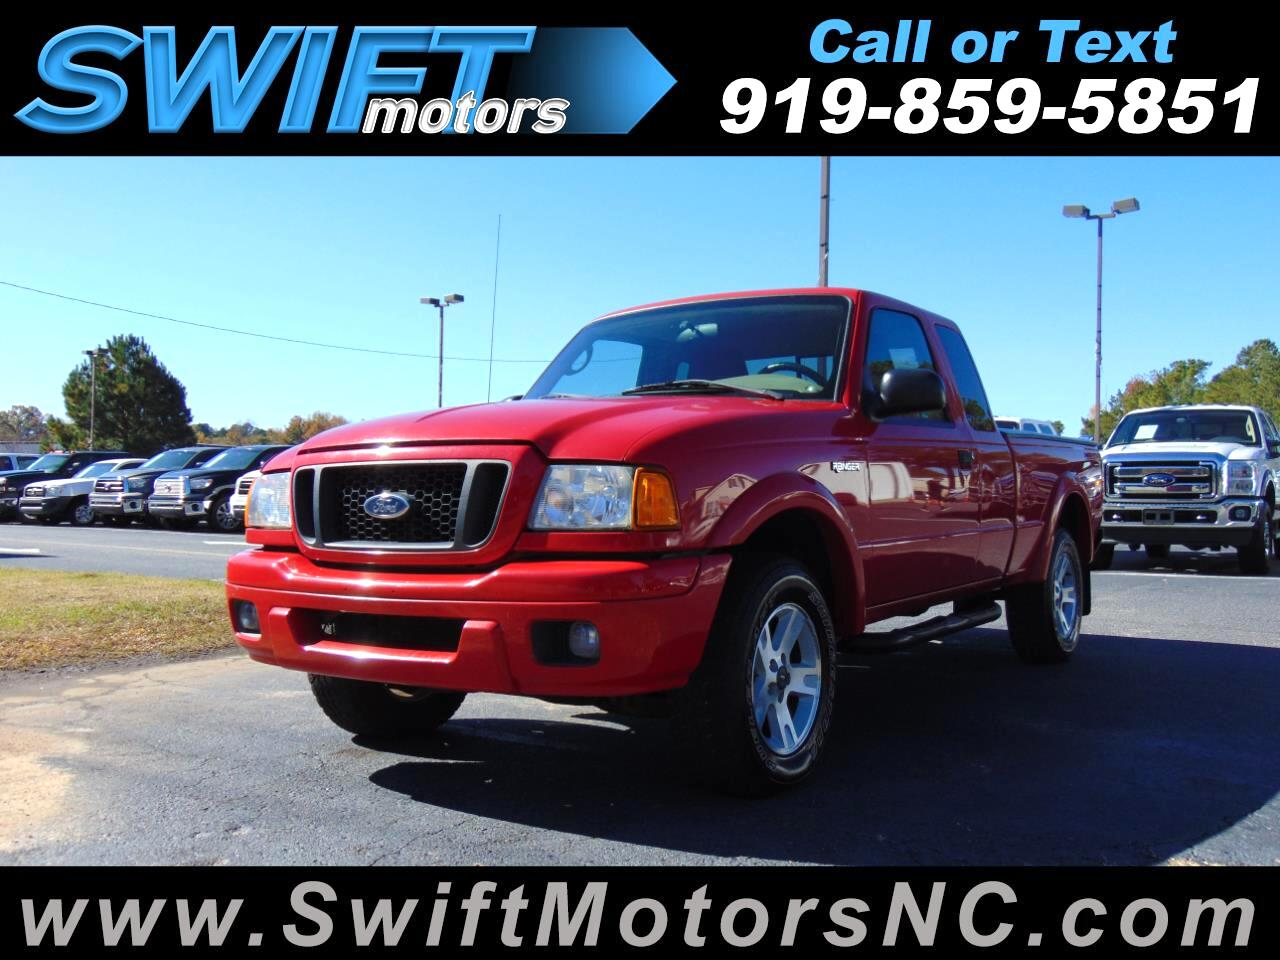 2005 Ford Ranger  for sale VIN: 1FTYR44E25PB00542